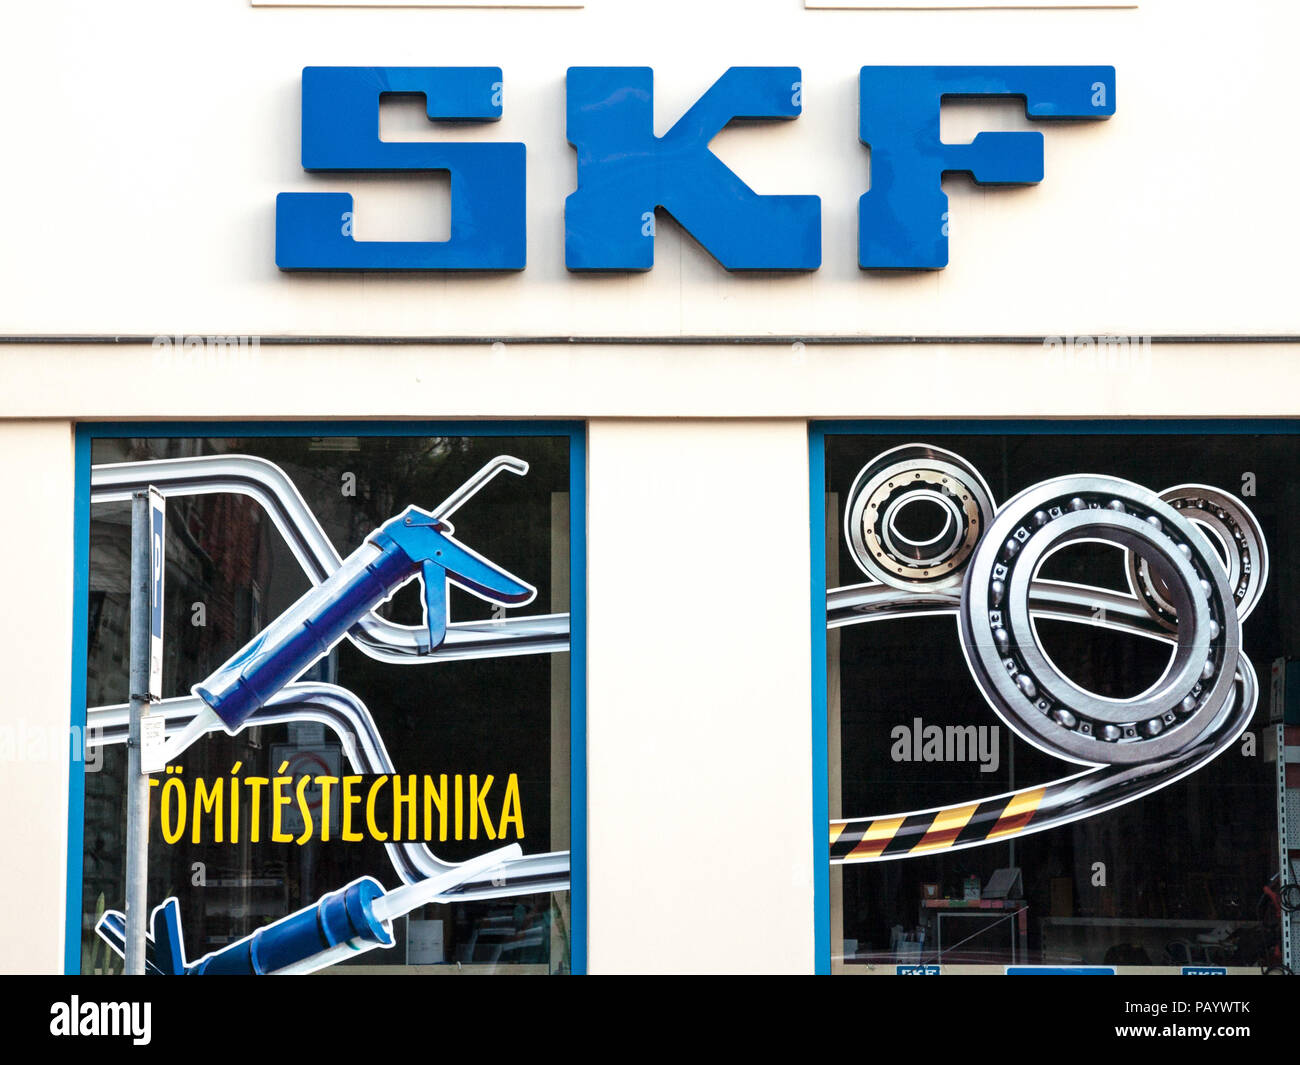 SZEGED, HUNGARY - JULY 3, 2018: SKF logo on their main shop for Szeged. SKF, from Sweden, is the world's largest bearing manufacturer, spread worldwid - Stock Image